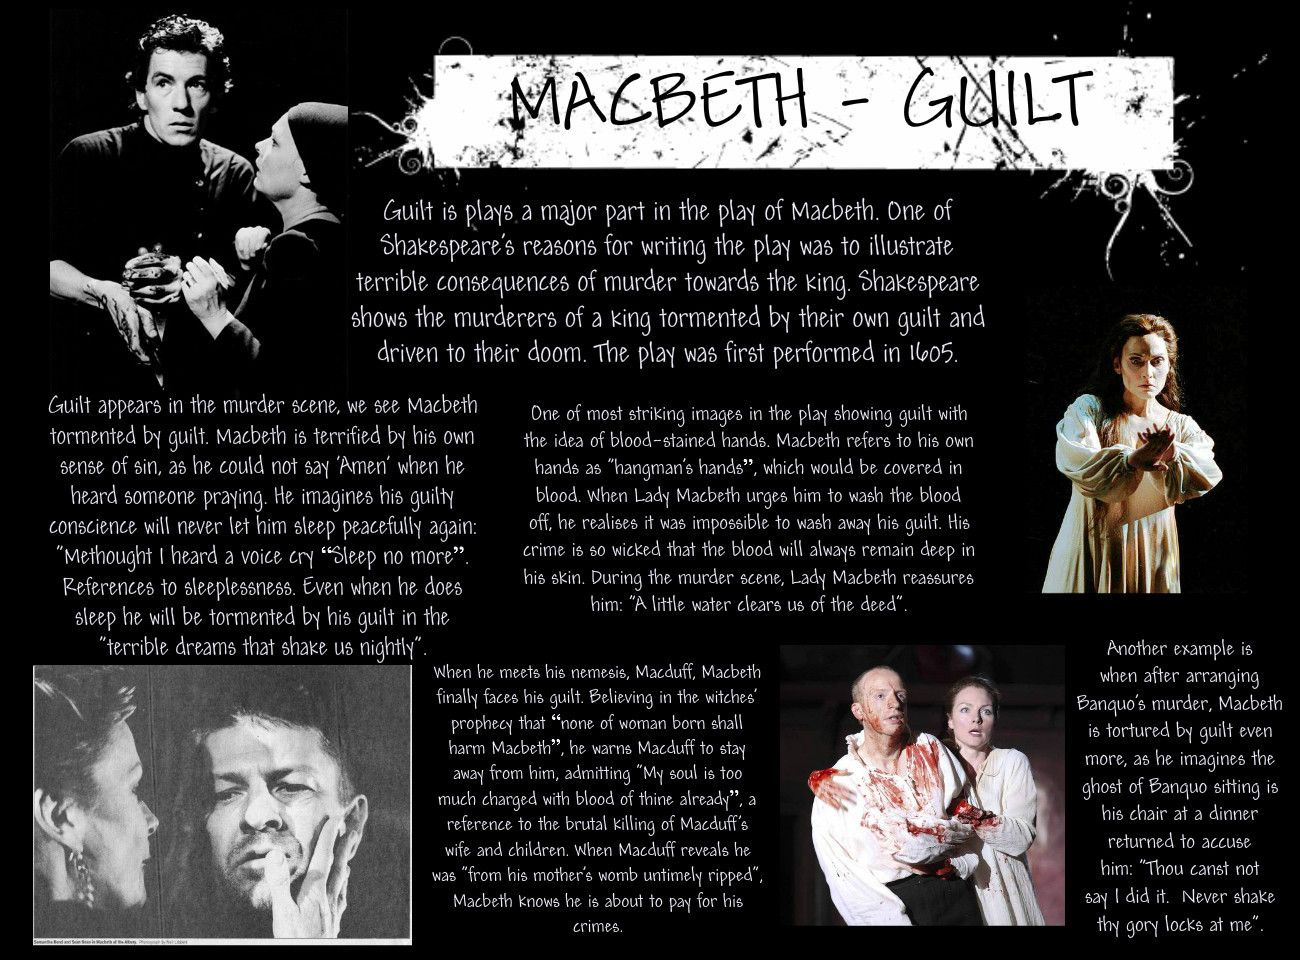 macbeth essays on symbolism I am going to prove that in the play macbeth, a symbol of blood is portrayed often(and with different meanings), and that it is a symbol that is developed until it is the dominating theme of the play towards the end of it.